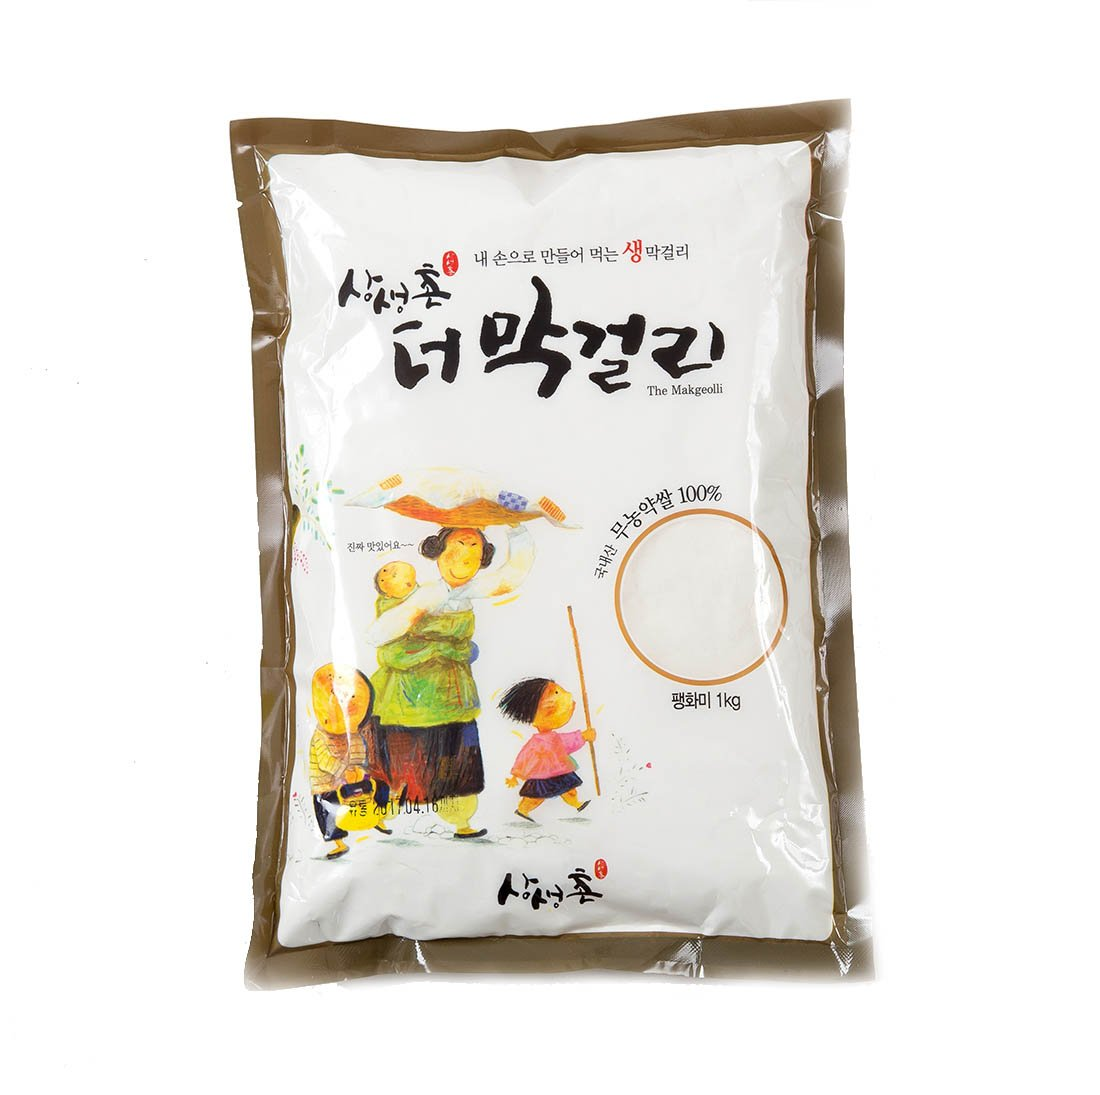 The Makgeolli Korean Traditional Organic Rice Wine Home Brewing DIY Kit 2.2lb